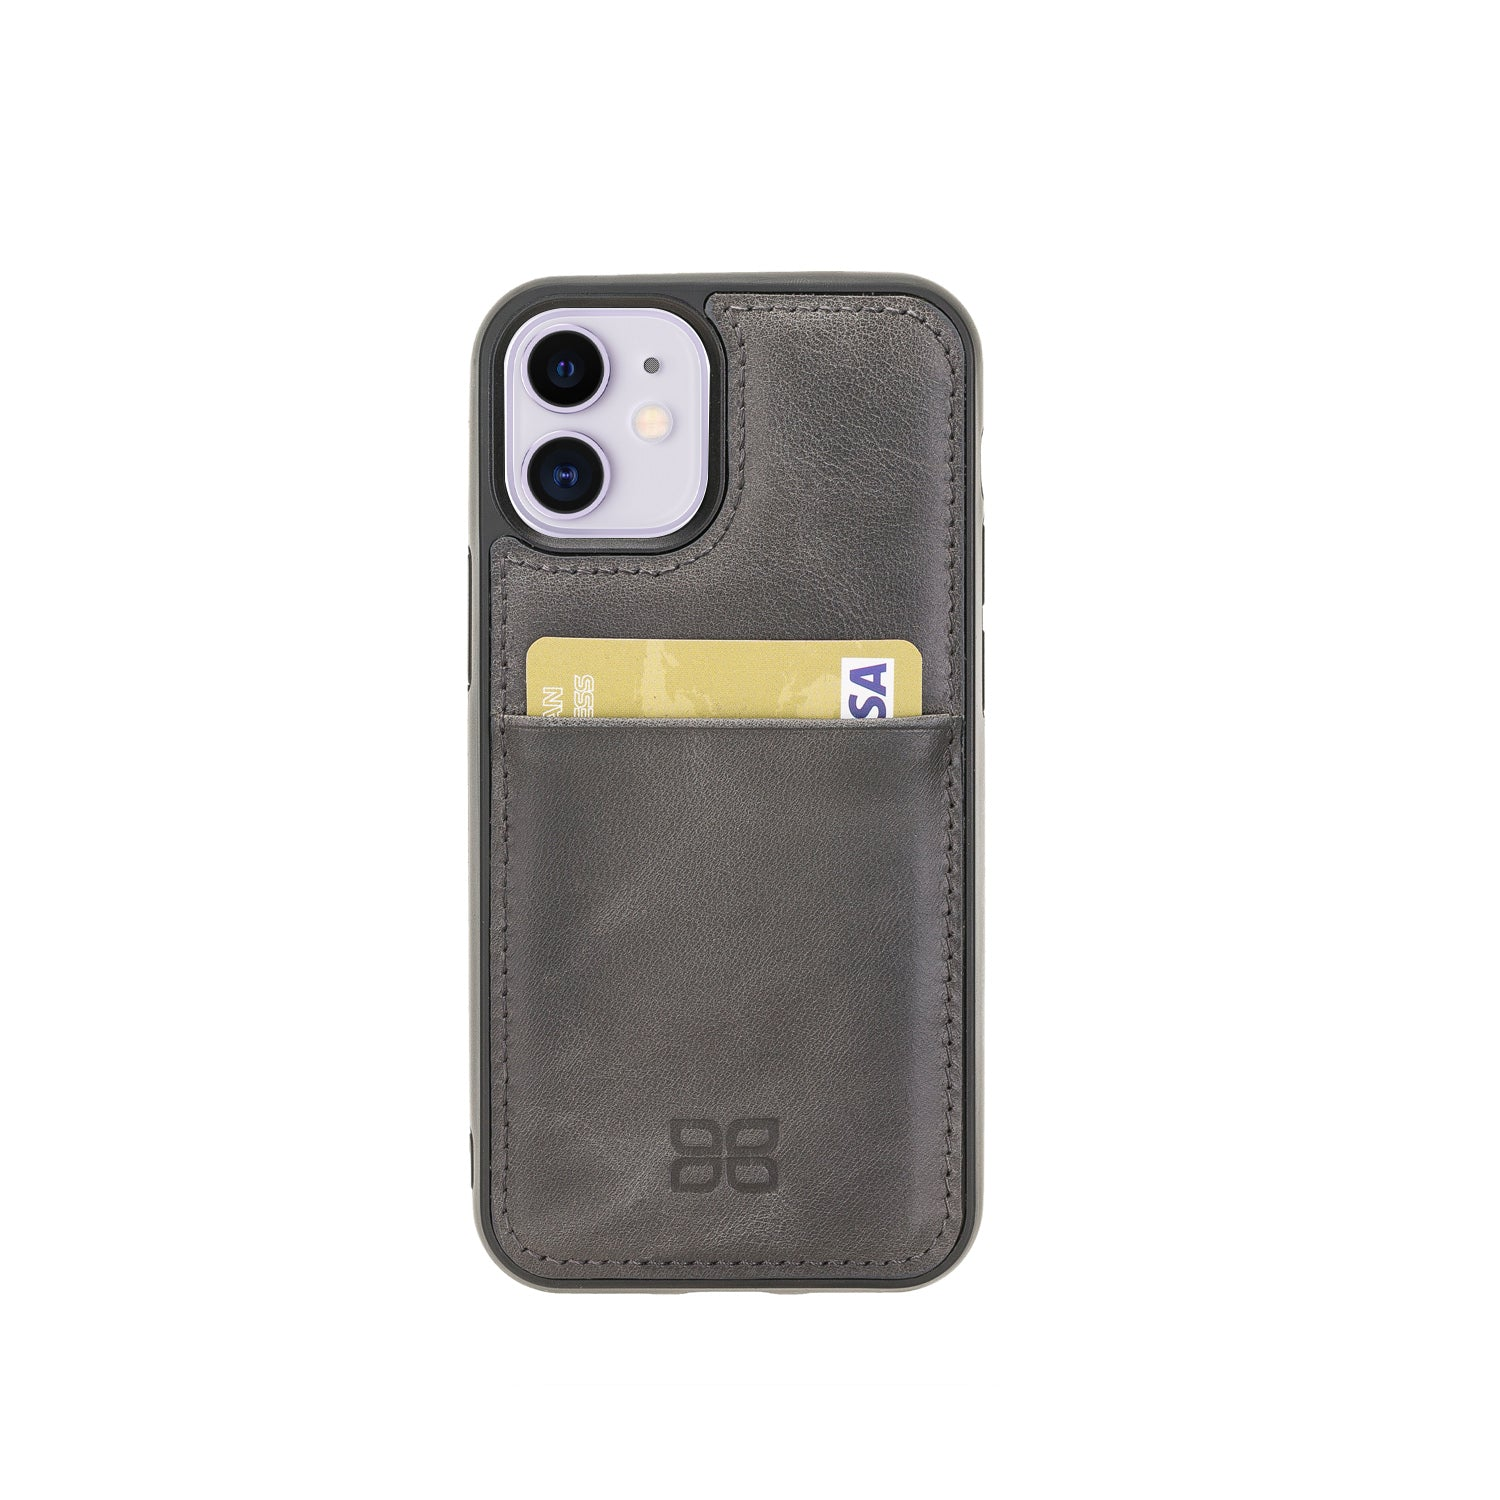 "Flex Cover Leather Back Case with Card Holder for iPhone 12 Mini (5.4"") - GRAY - saracleather"